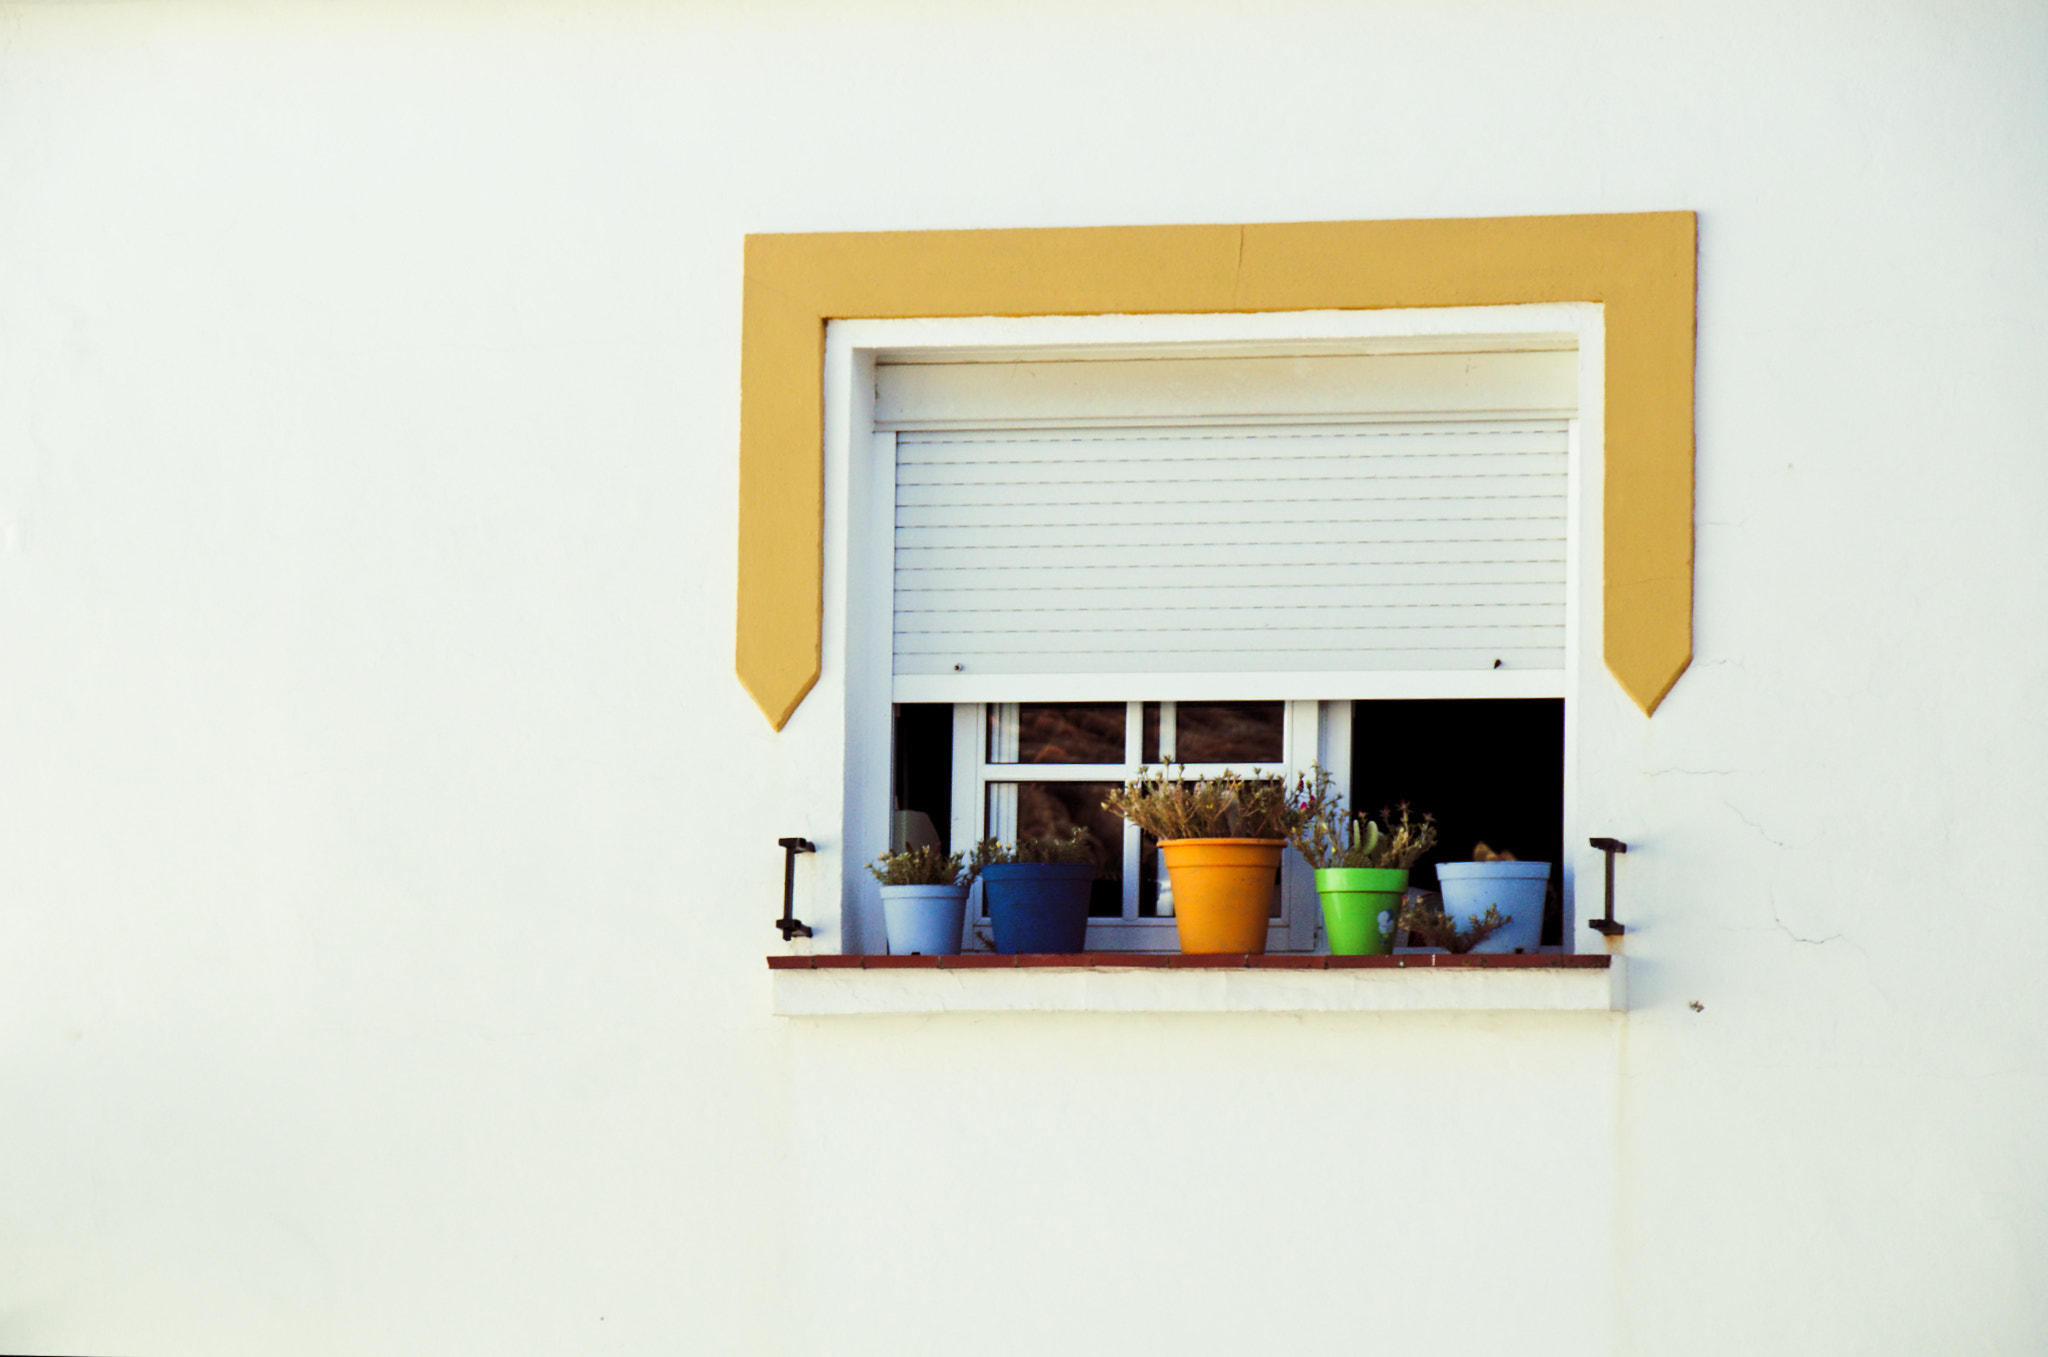 Photograph Window by Andrés J. Márquez on 500px